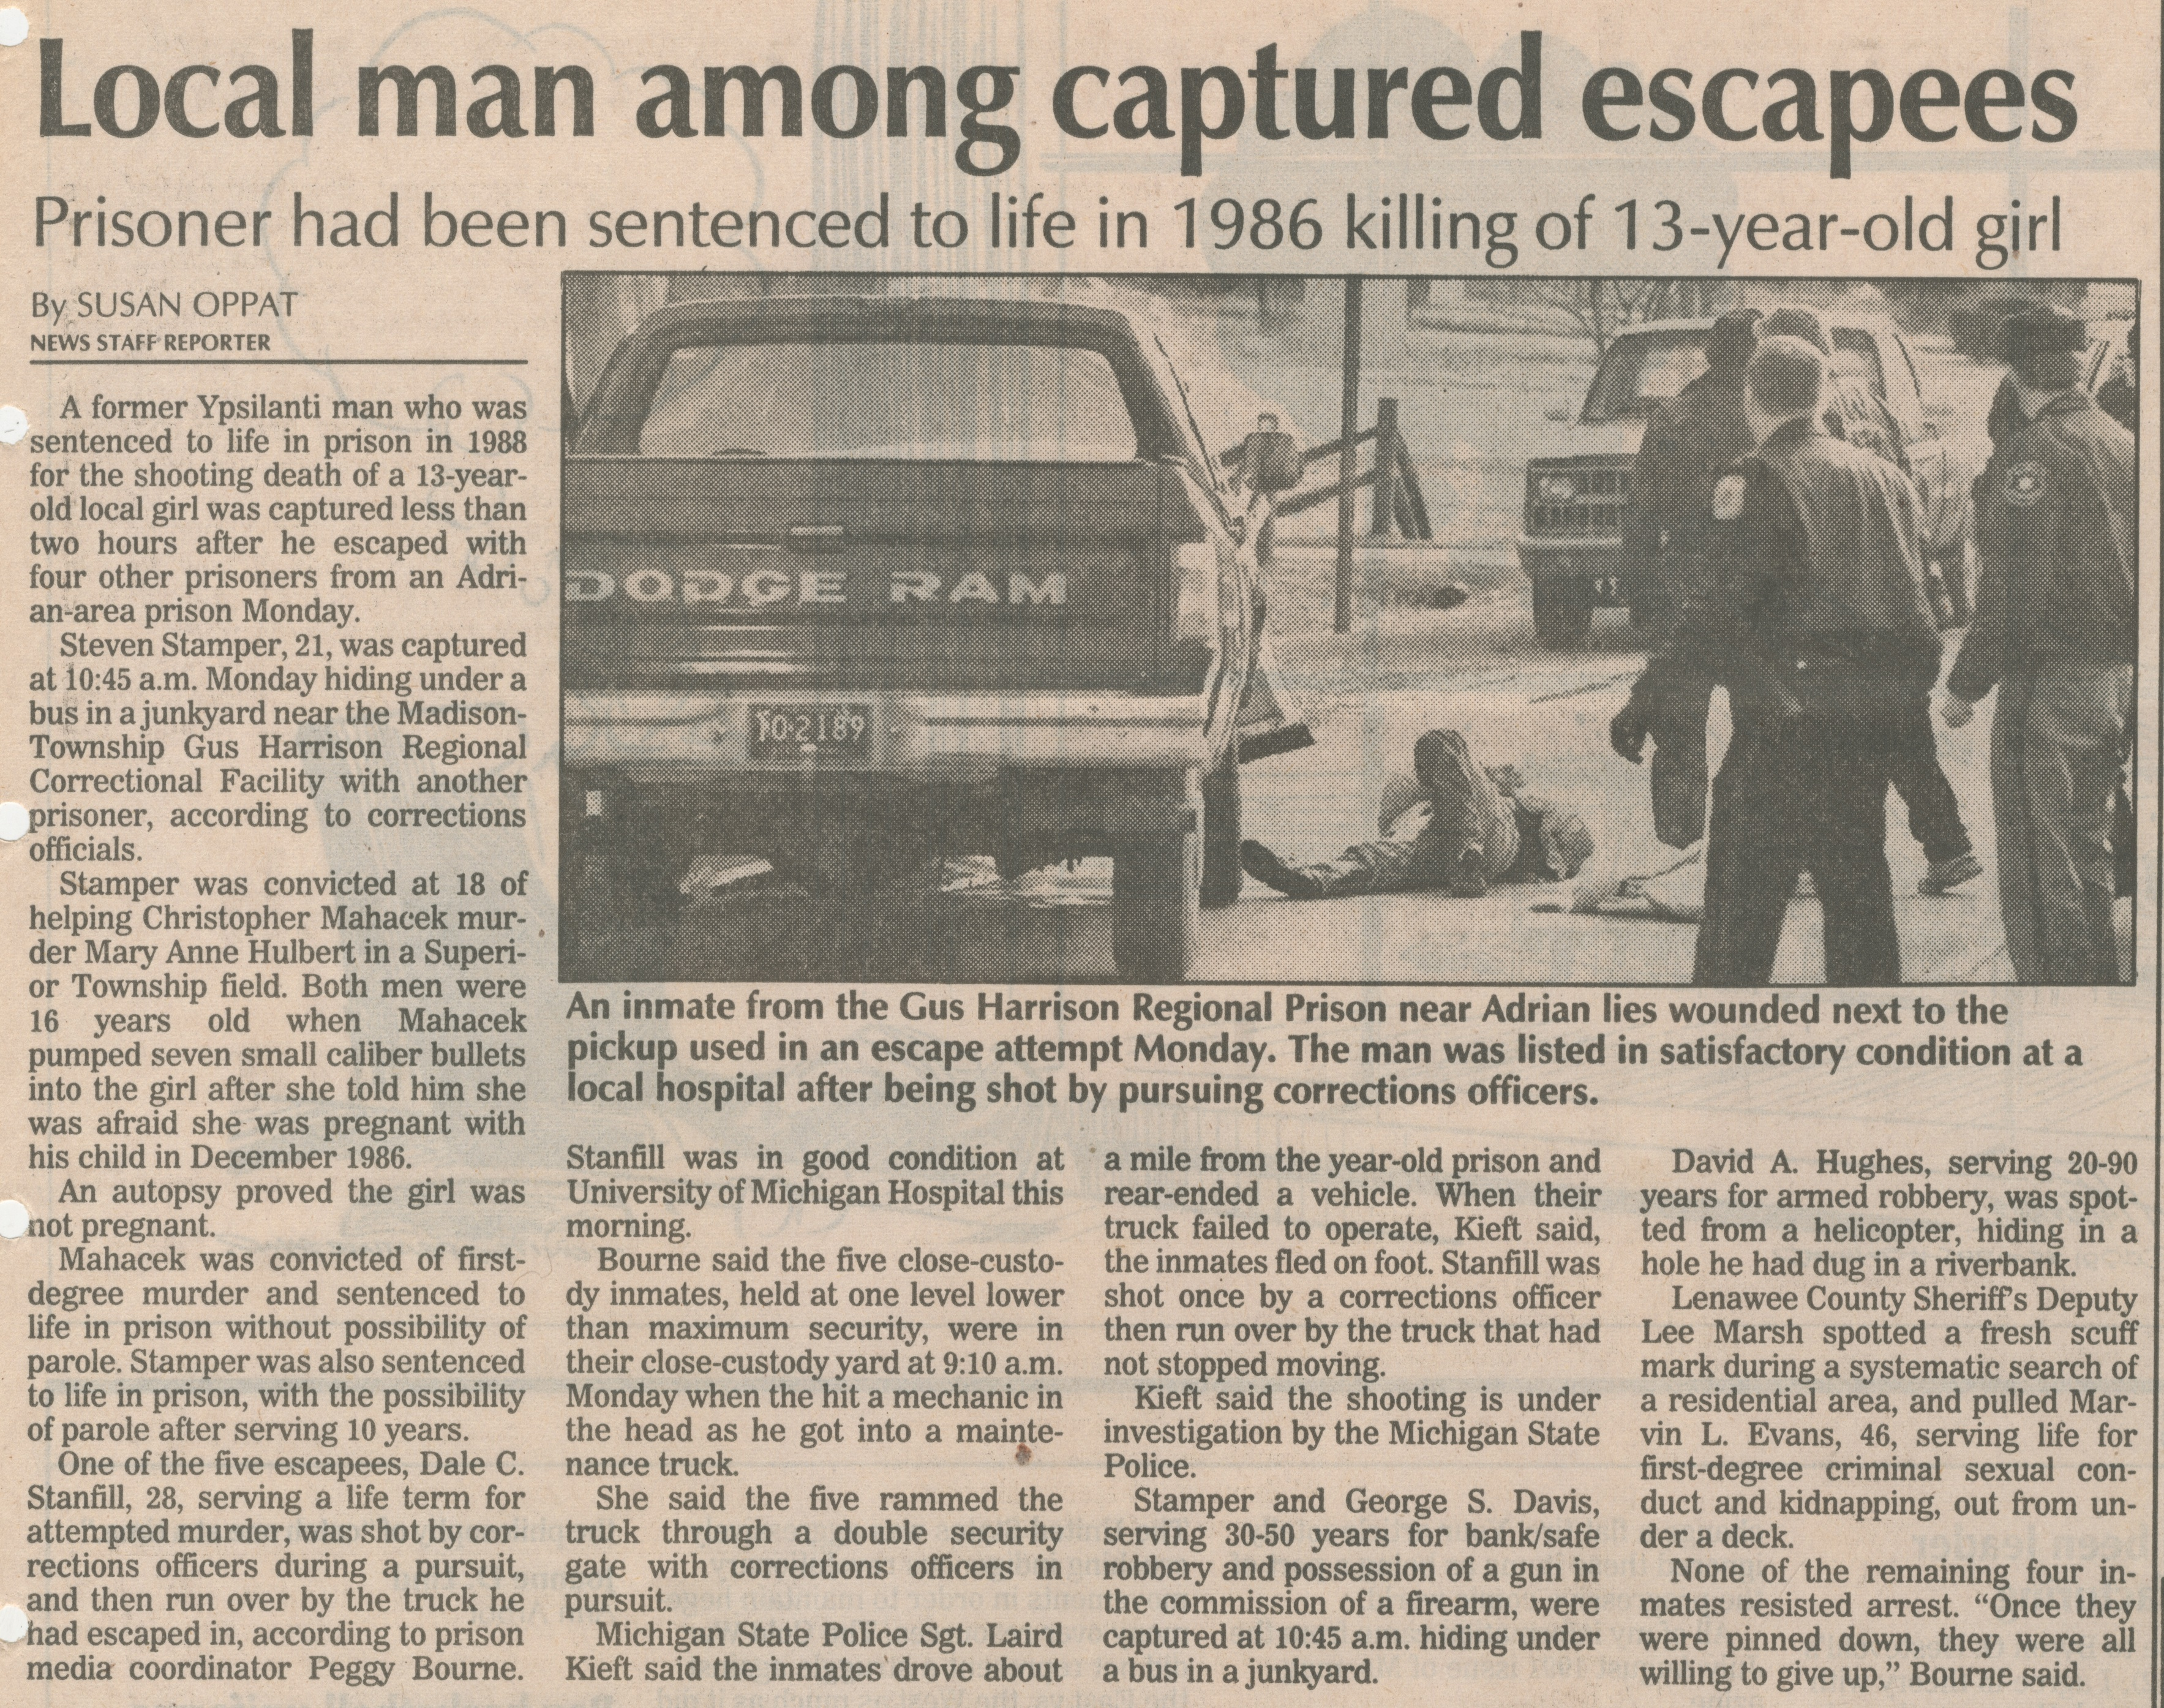 Local Man Among Captured Escapees image